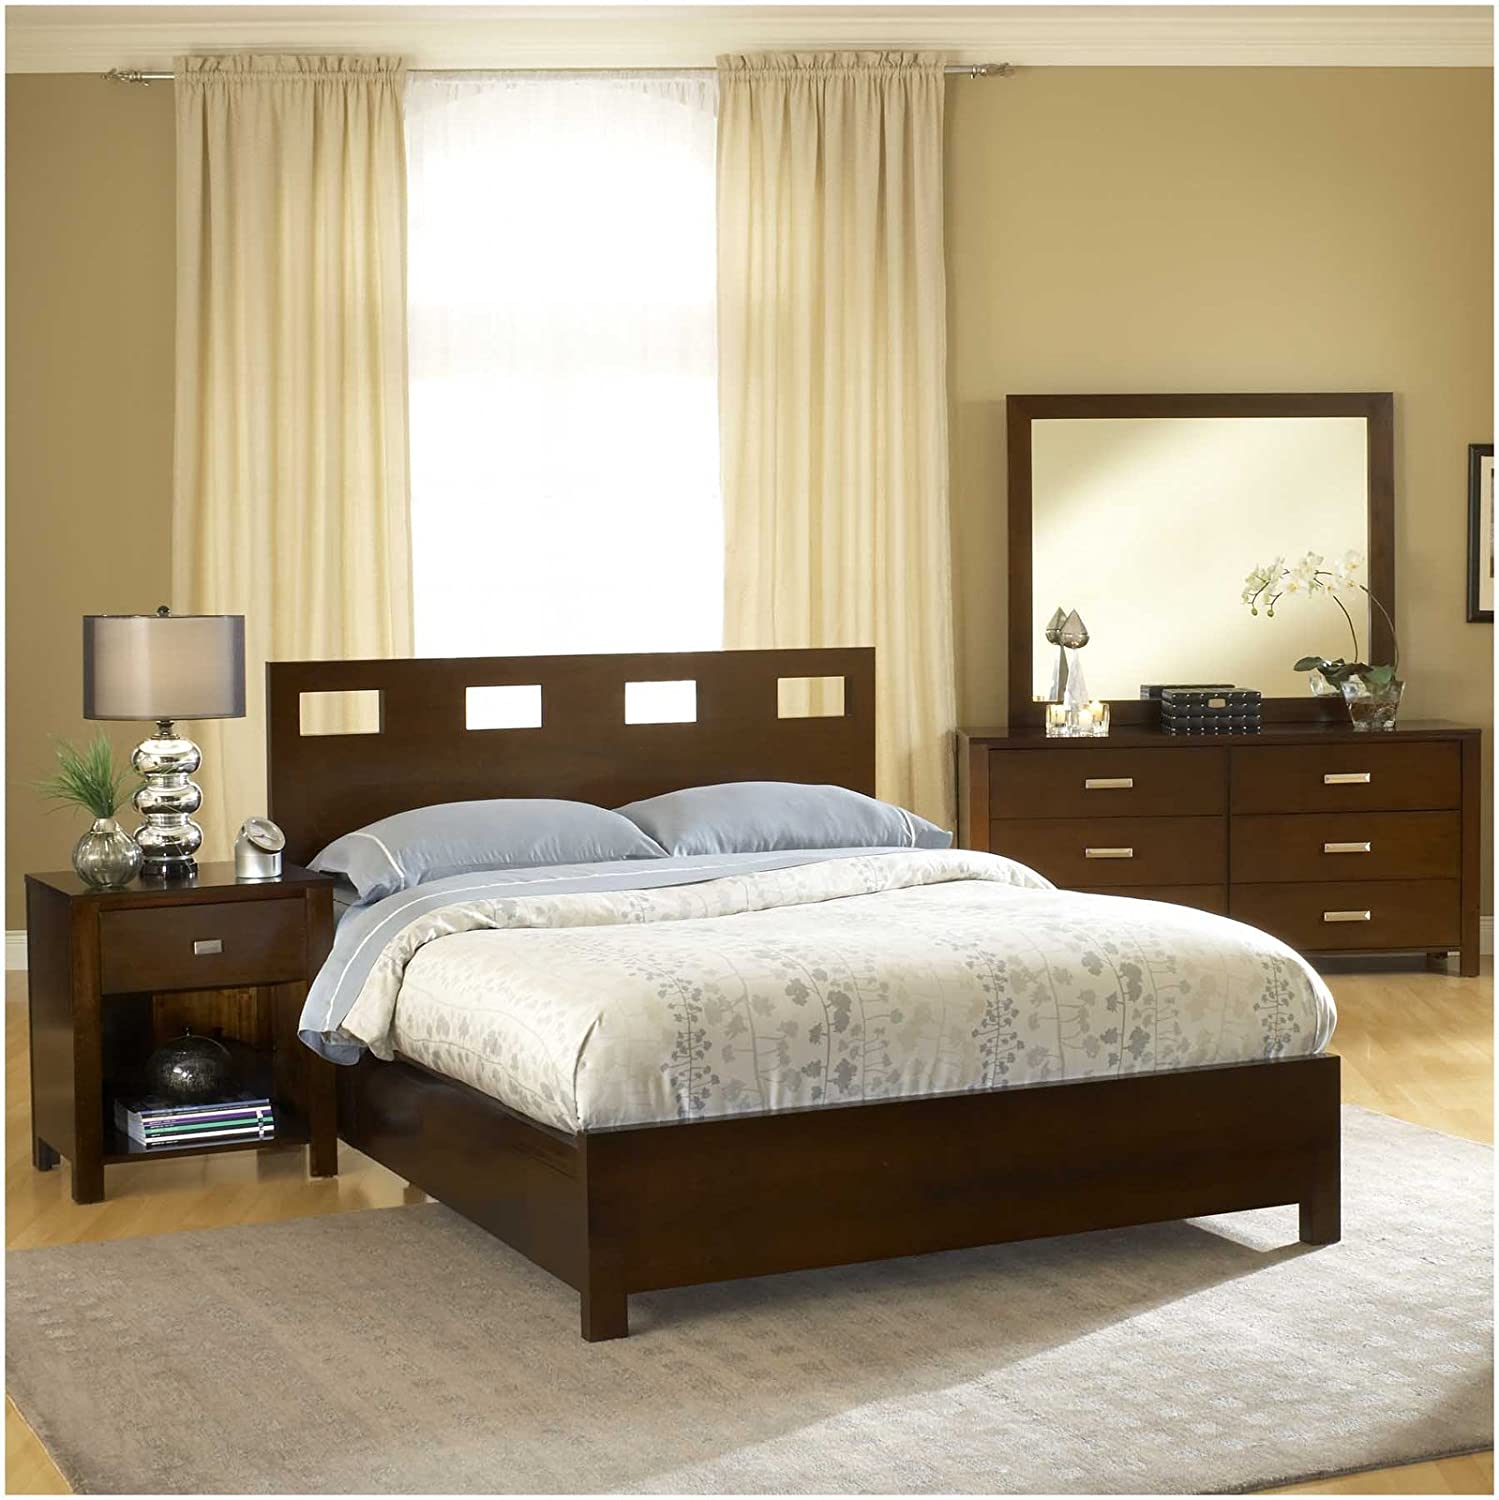 Queen Size Low Bed Part - 48: Amazon.com: Modus Furniture RV26F5 Riva Platform Bed, Queen, Chocolate  Brown: Kitchen U0026 Dining